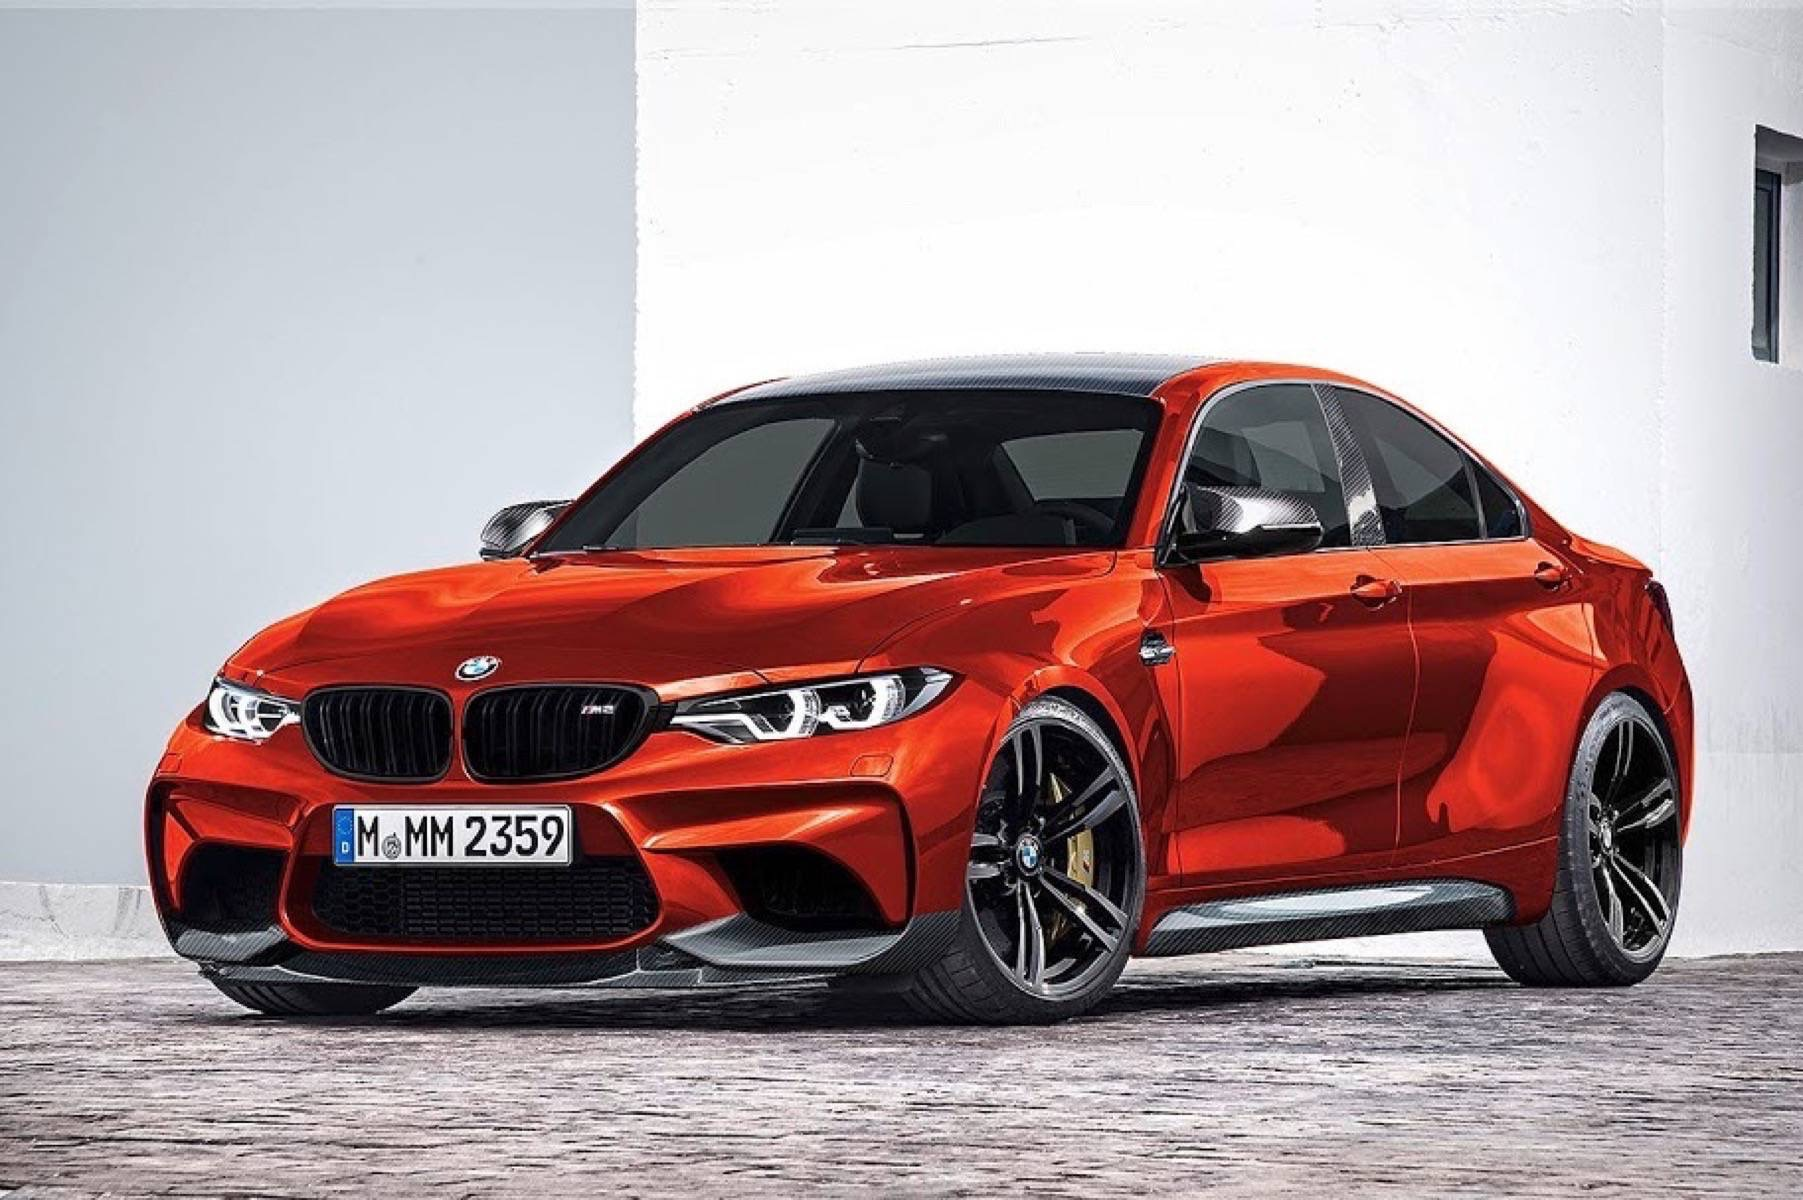 Render do BMW M2 Gran Coupé